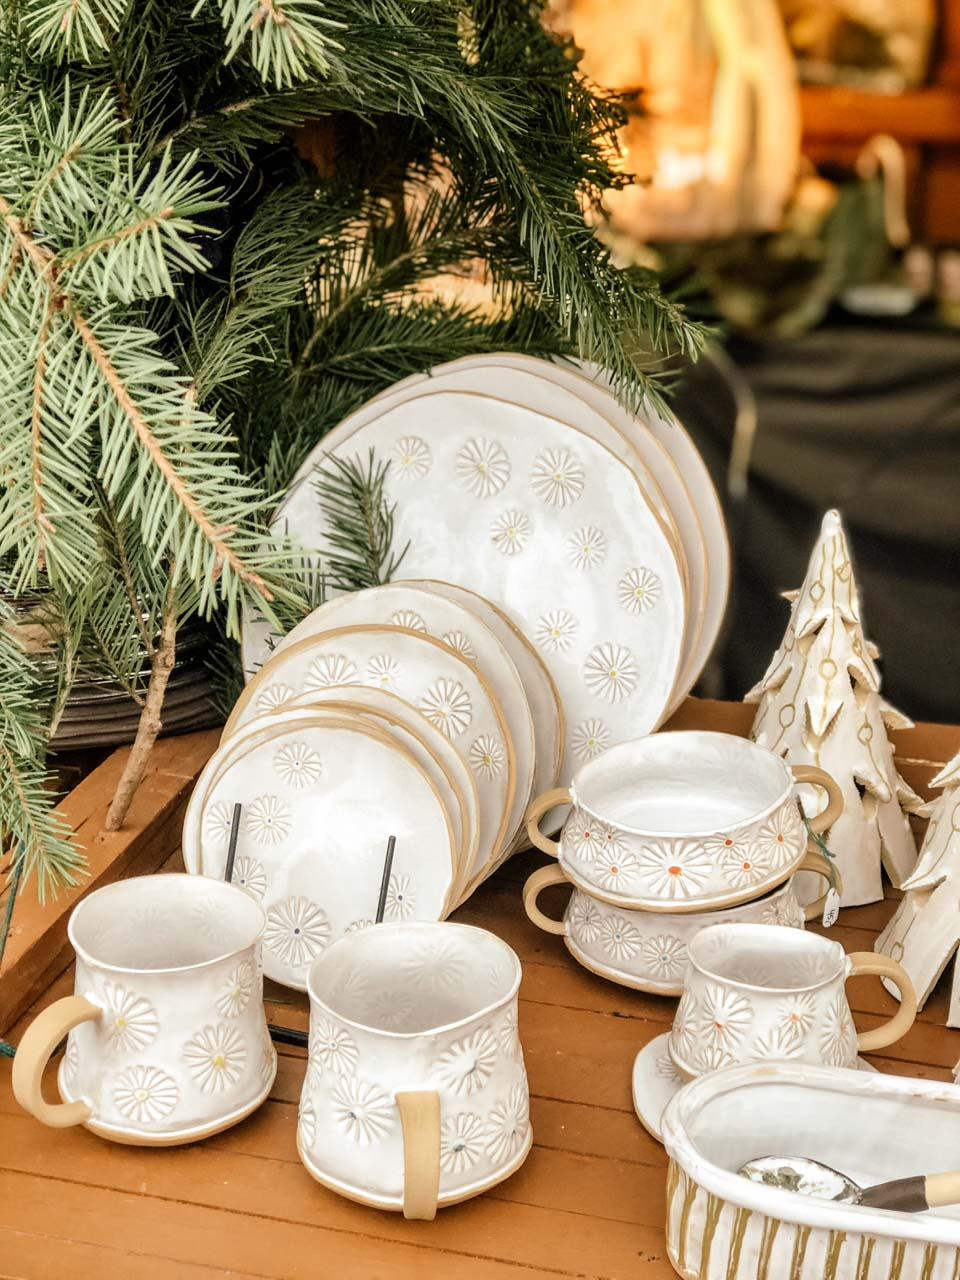 Handmade tableware at the Christmas market in Gdynia